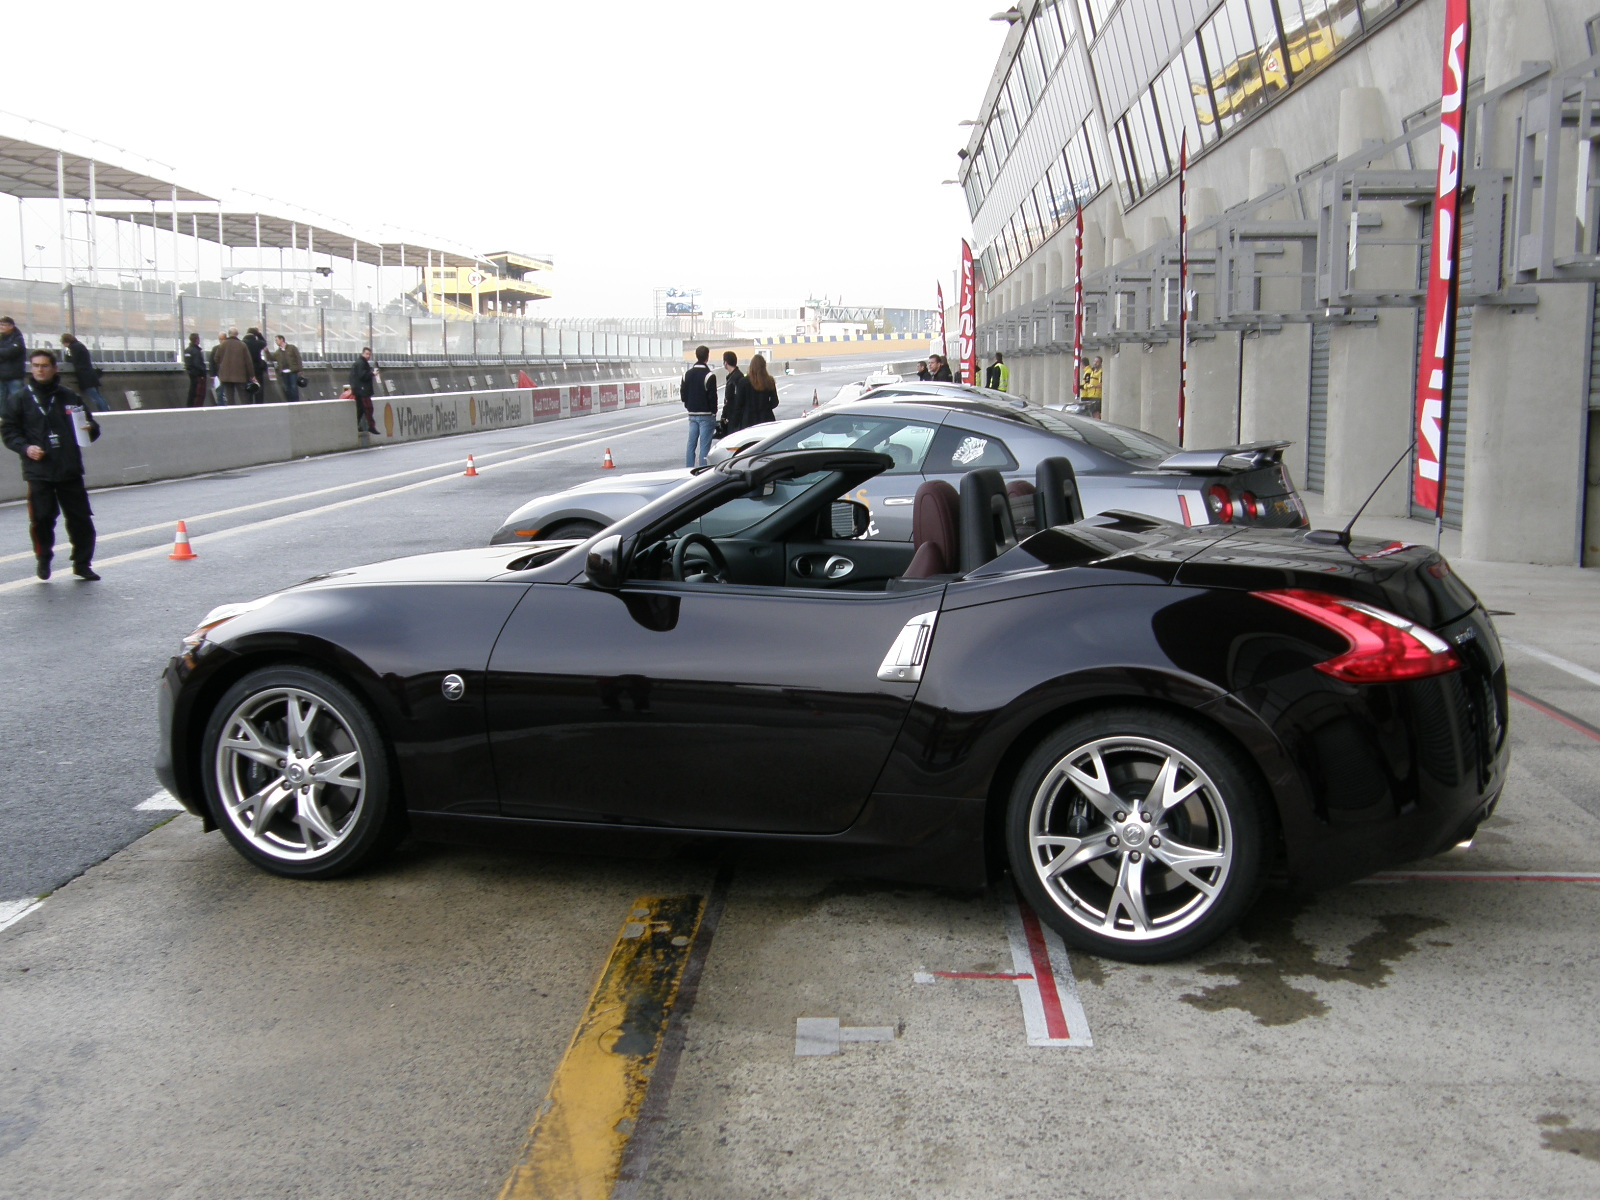 prise en mains vid o nissan 370z roadster en france avant le printemps. Black Bedroom Furniture Sets. Home Design Ideas